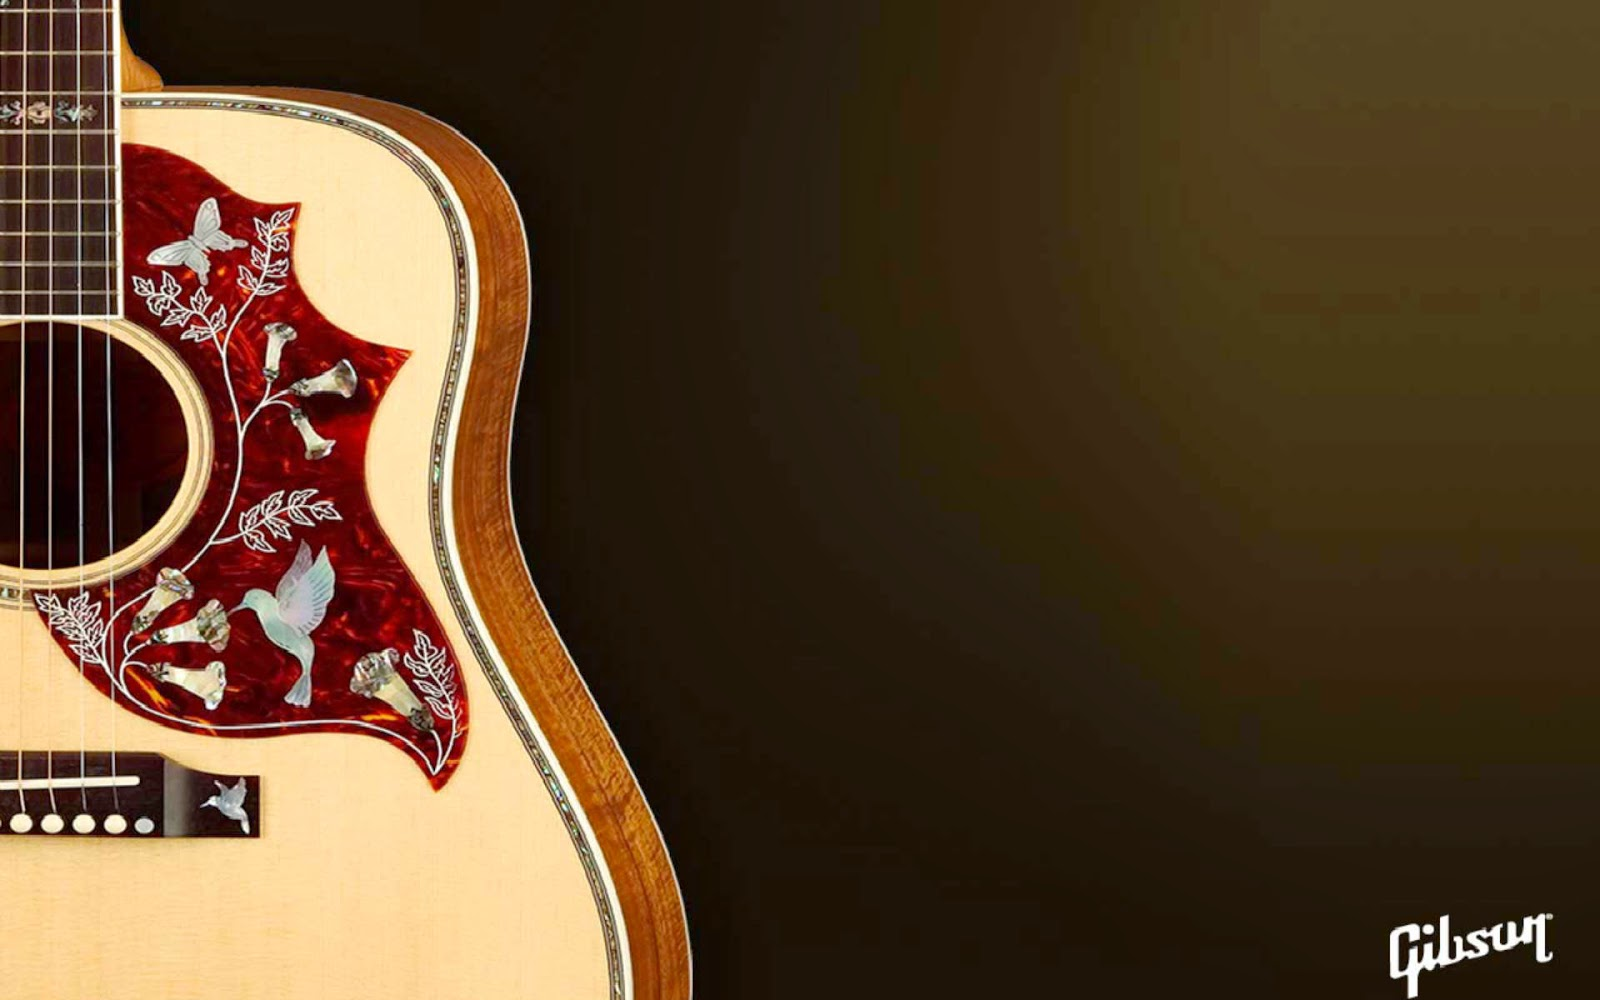 Free Download Gibson Acoustic Guitar Wallpaper Hd 1920x1200 Download Wallpaper For 1600x1000 For Your Desktop Mobile Tablet Explore 45 Acoustic Guitar Wallpaper Hd Martin Guitar Desktop Wallpaper Guitars Wallpapers